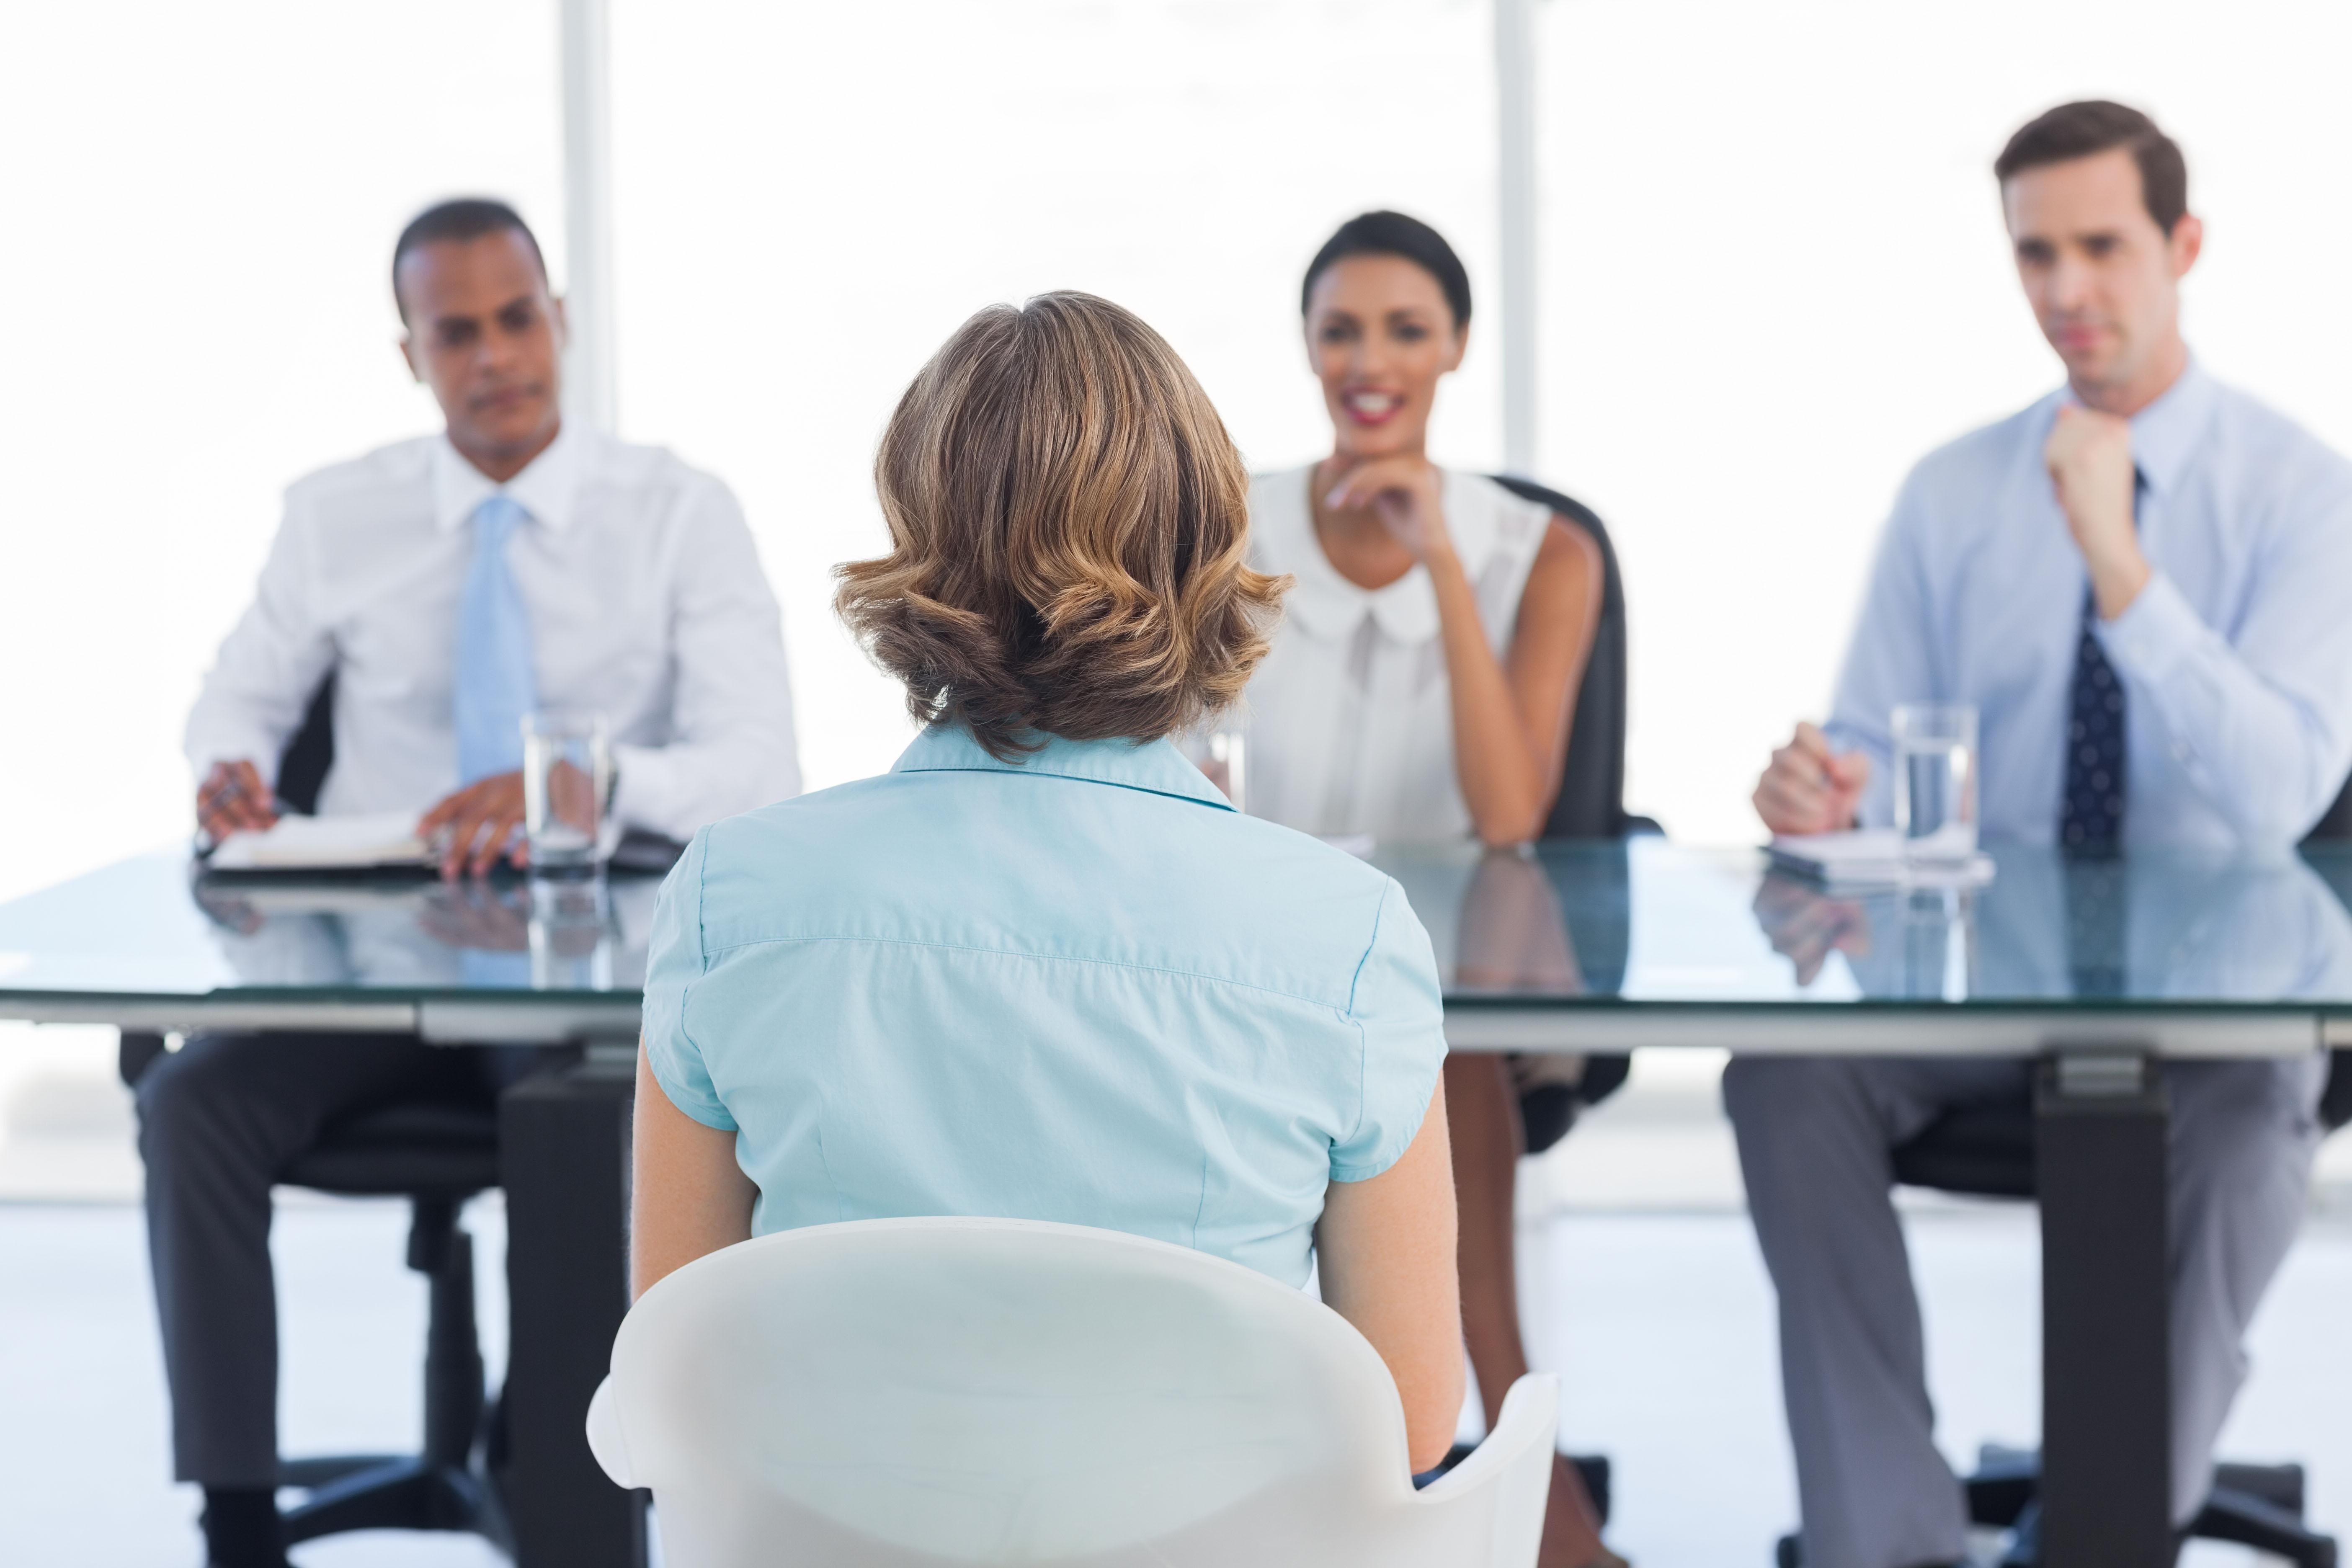 Six in 10 women struggle to articulate their thoughts and ideas during interviews, study finds